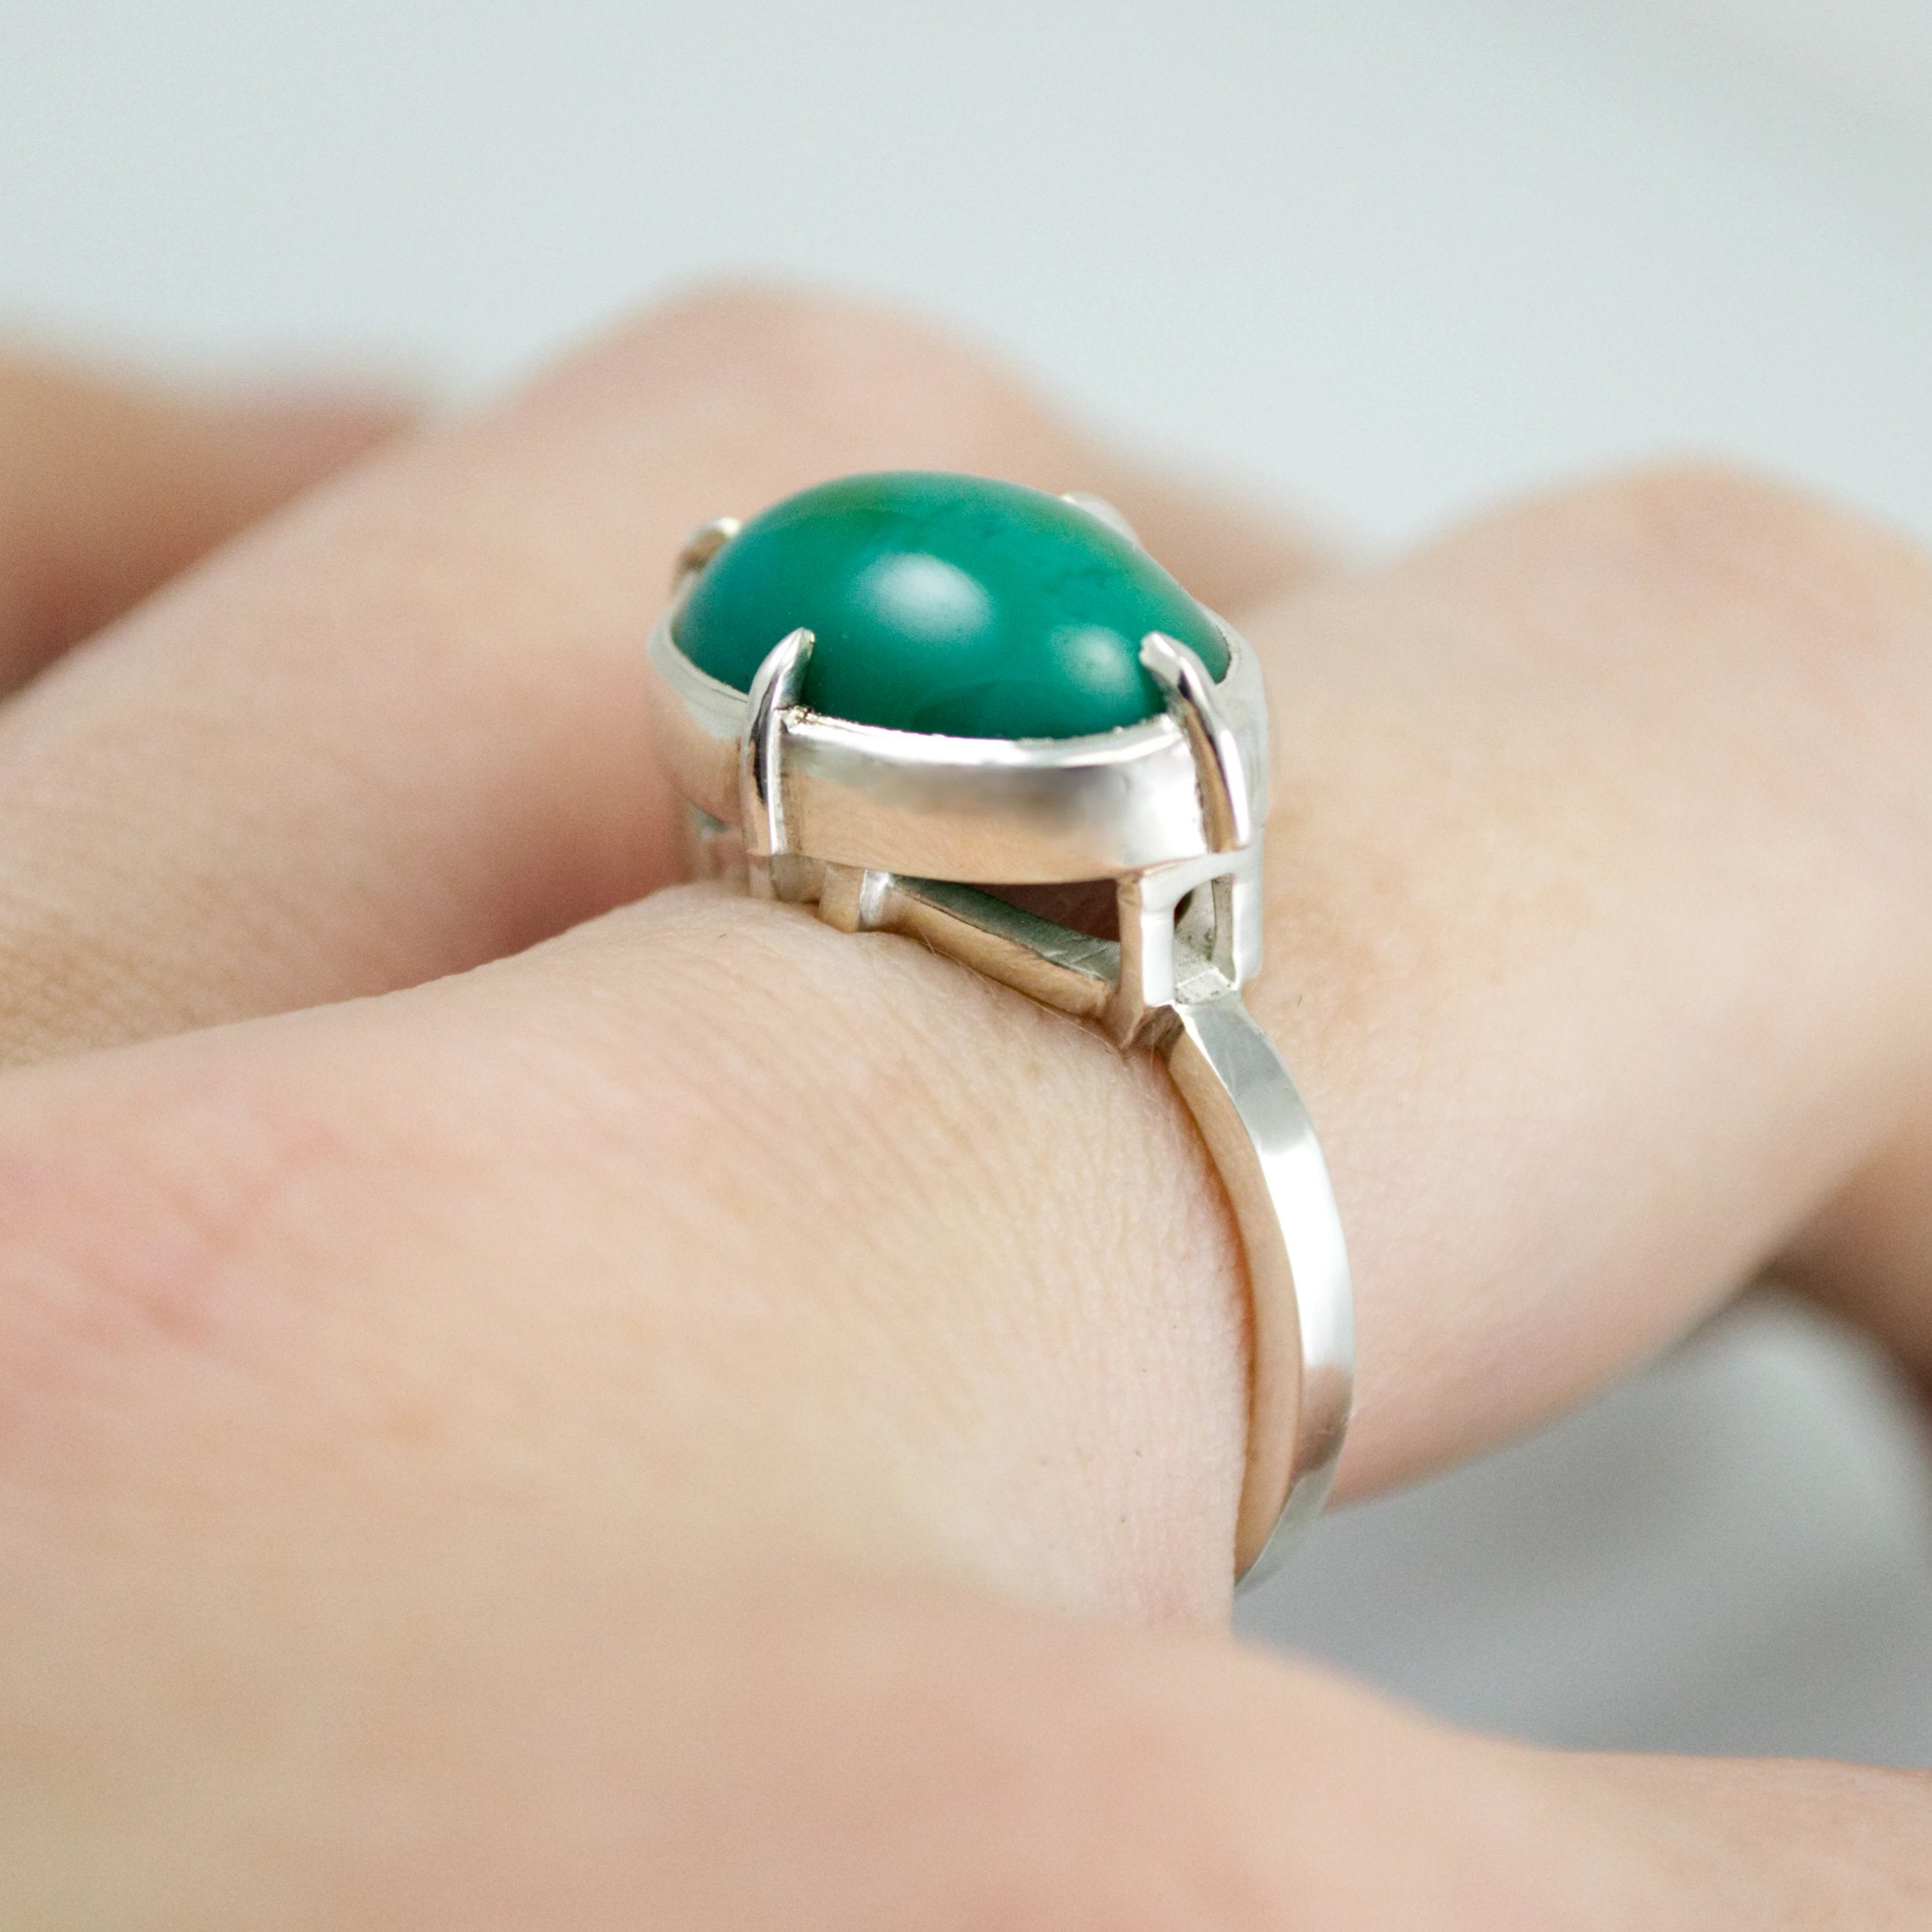 Chrysocolla Ring - Phetteplace Studio